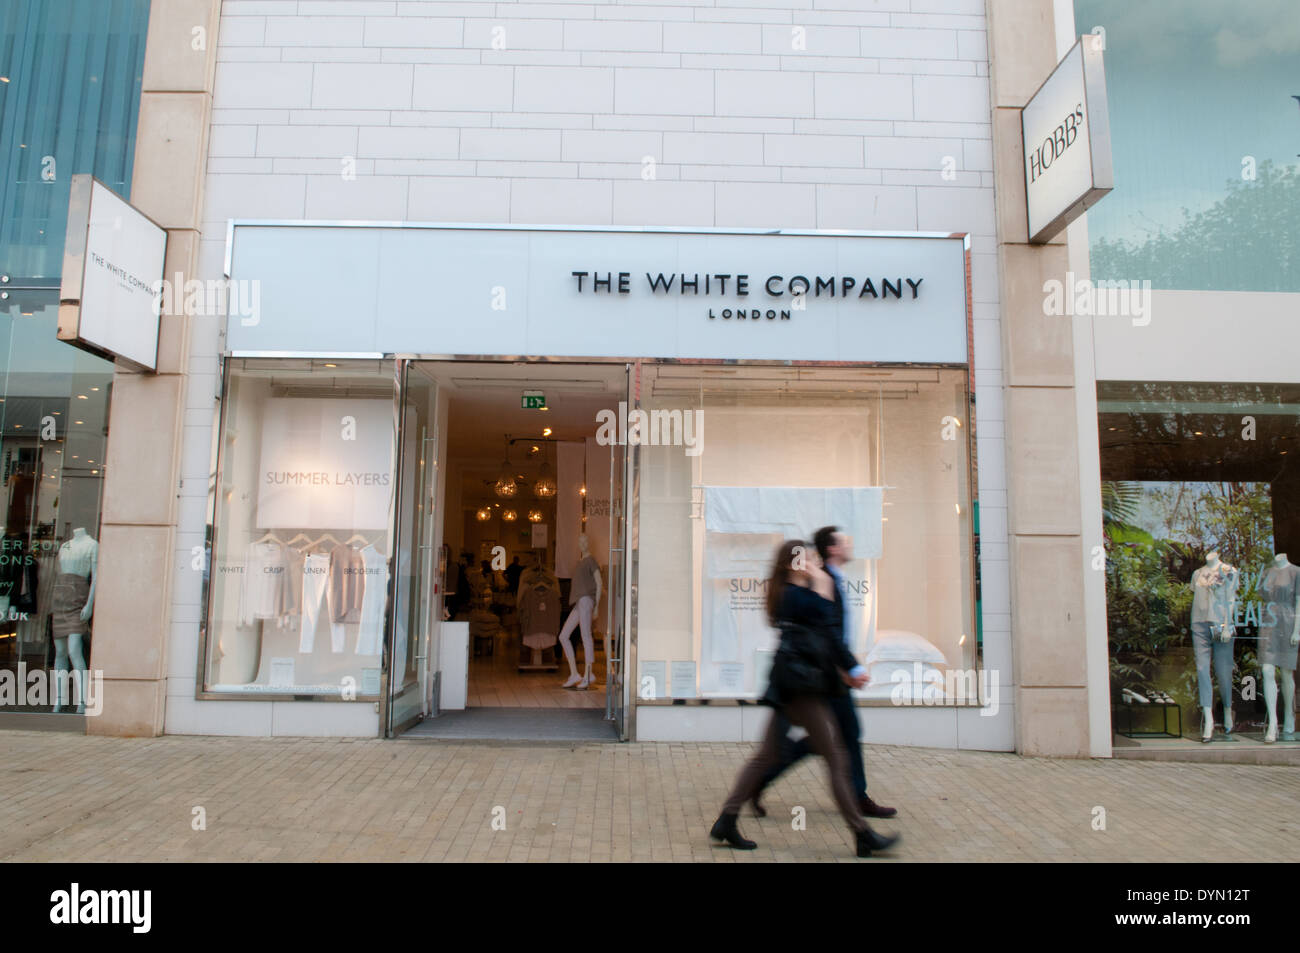 Shoppers walk past the shopfront of the lifestyle store The White Company in up-market Cabot Circus shopping area in Bristol - Stock Image